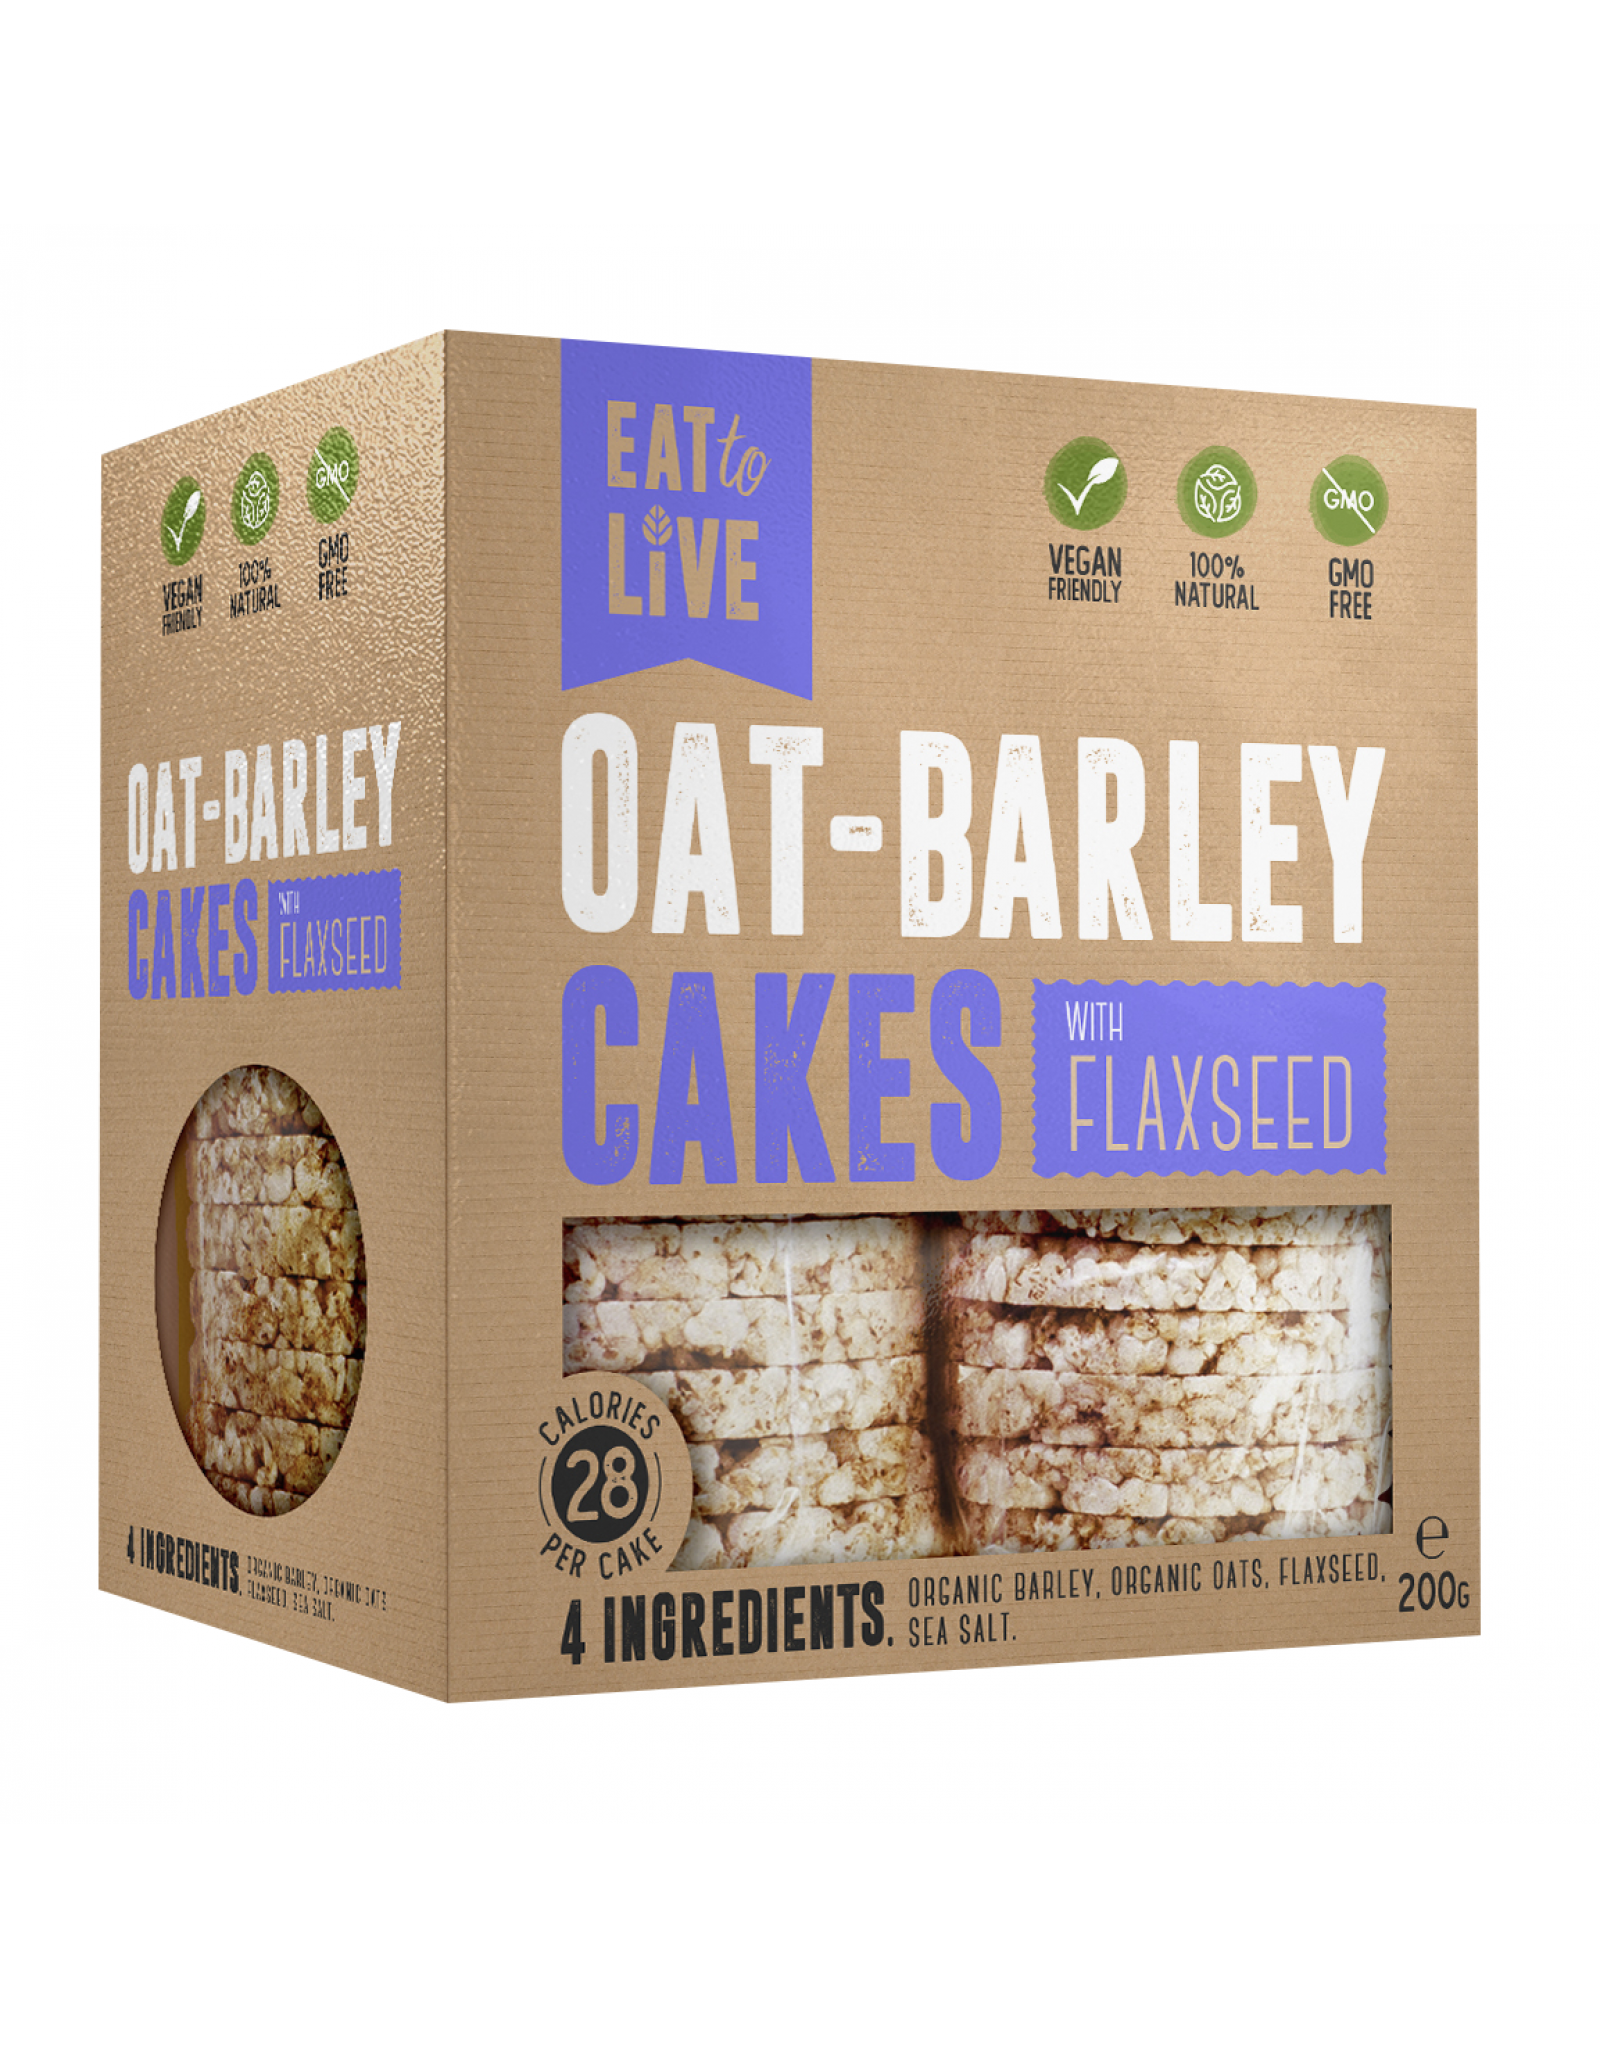 Eat to Live Oat Barley Cakes with Flaxseed 200g